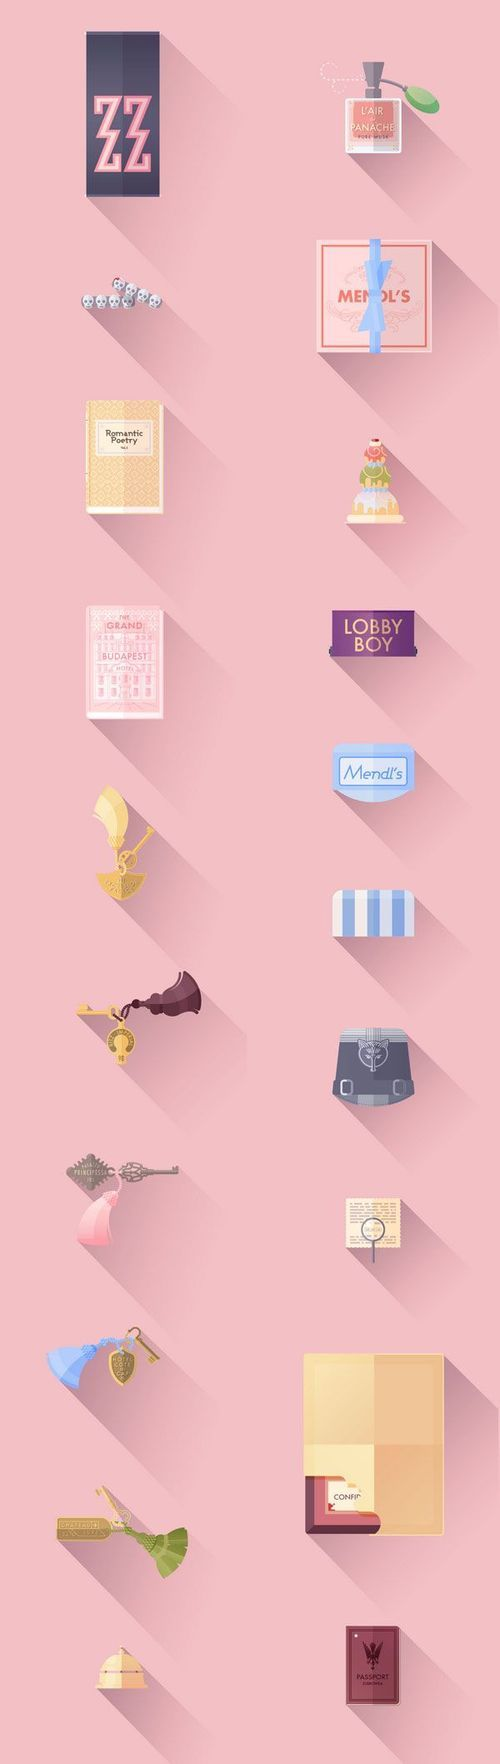 grand budapest hotel illustrated props